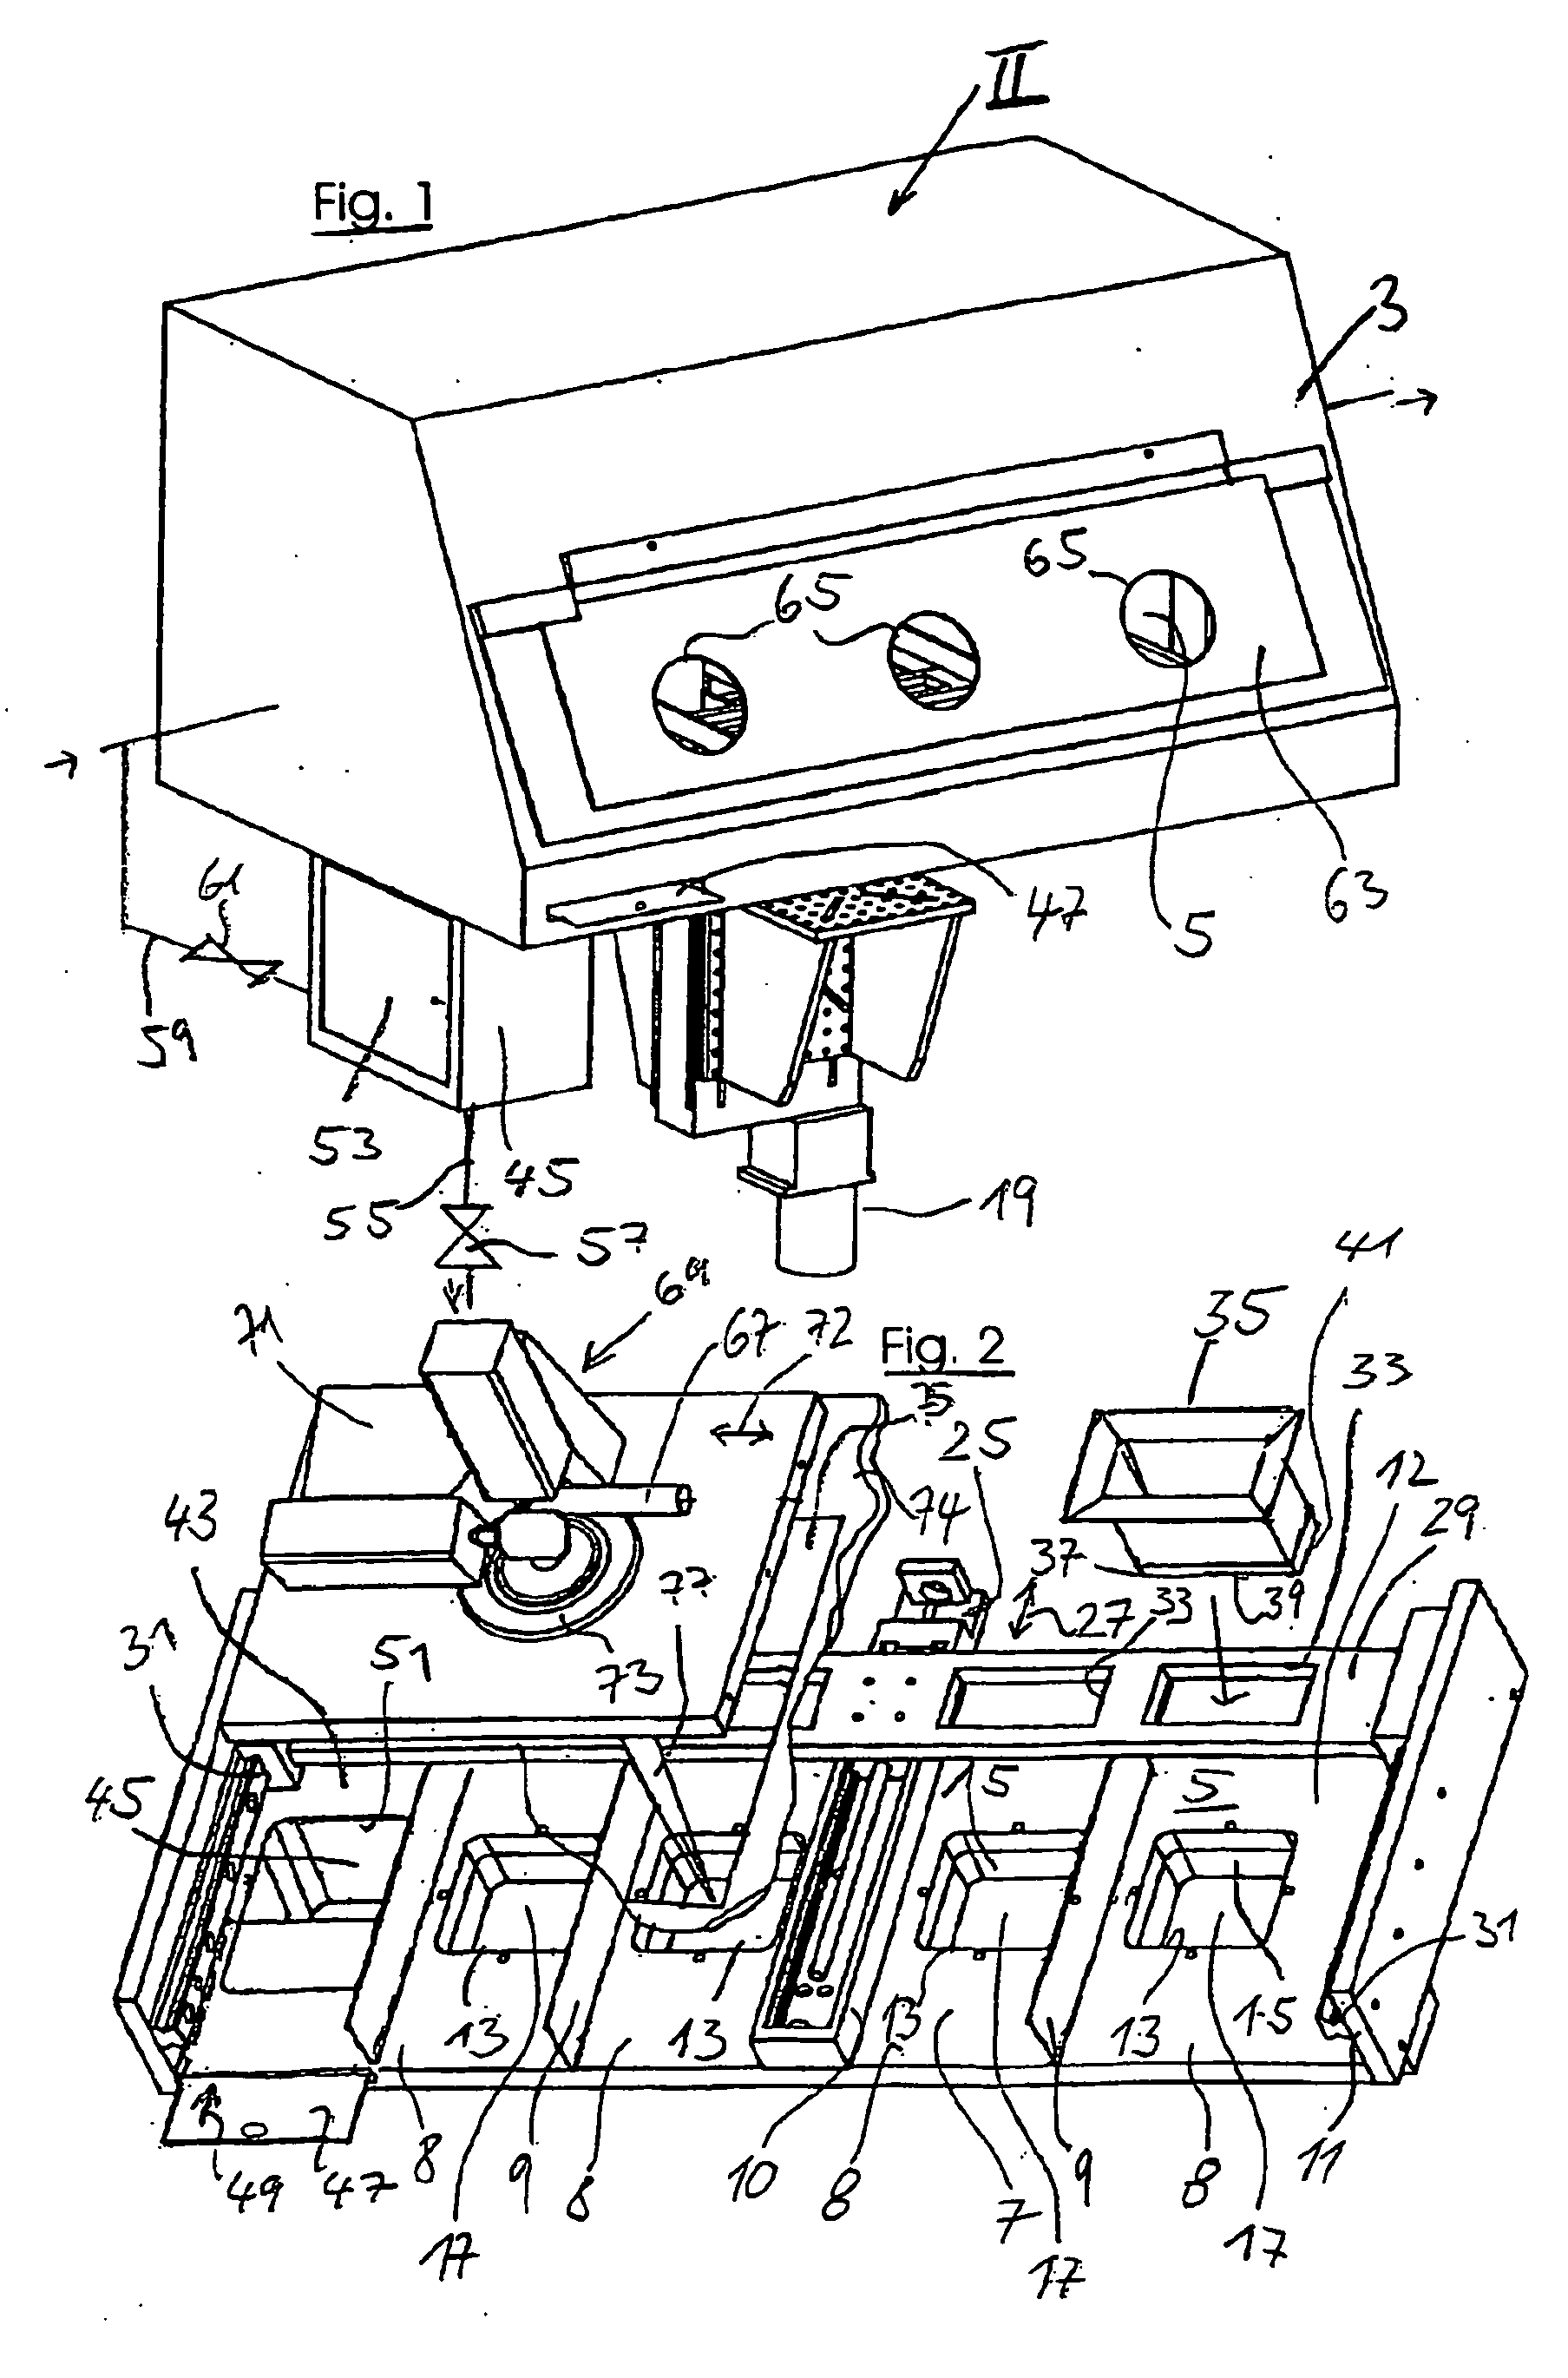 Patent drawing slm machine from 1995